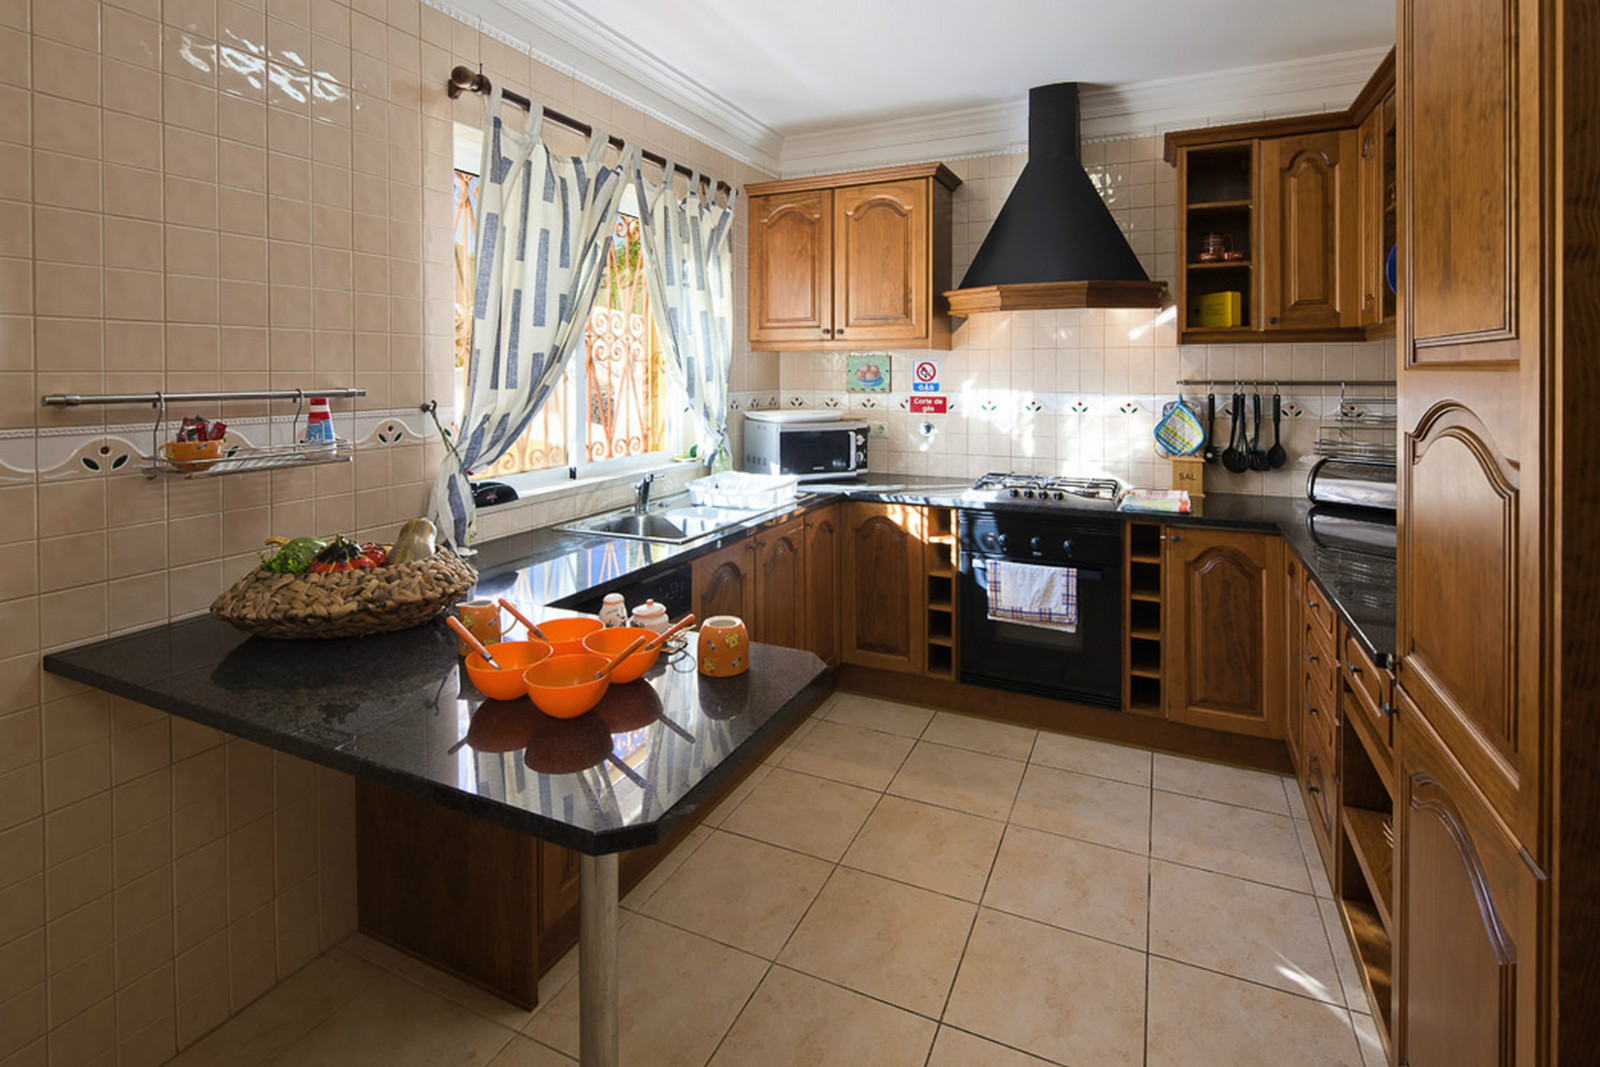 Beautiful, fully equipped kitchen, table & chairs, window & door to pool terrace